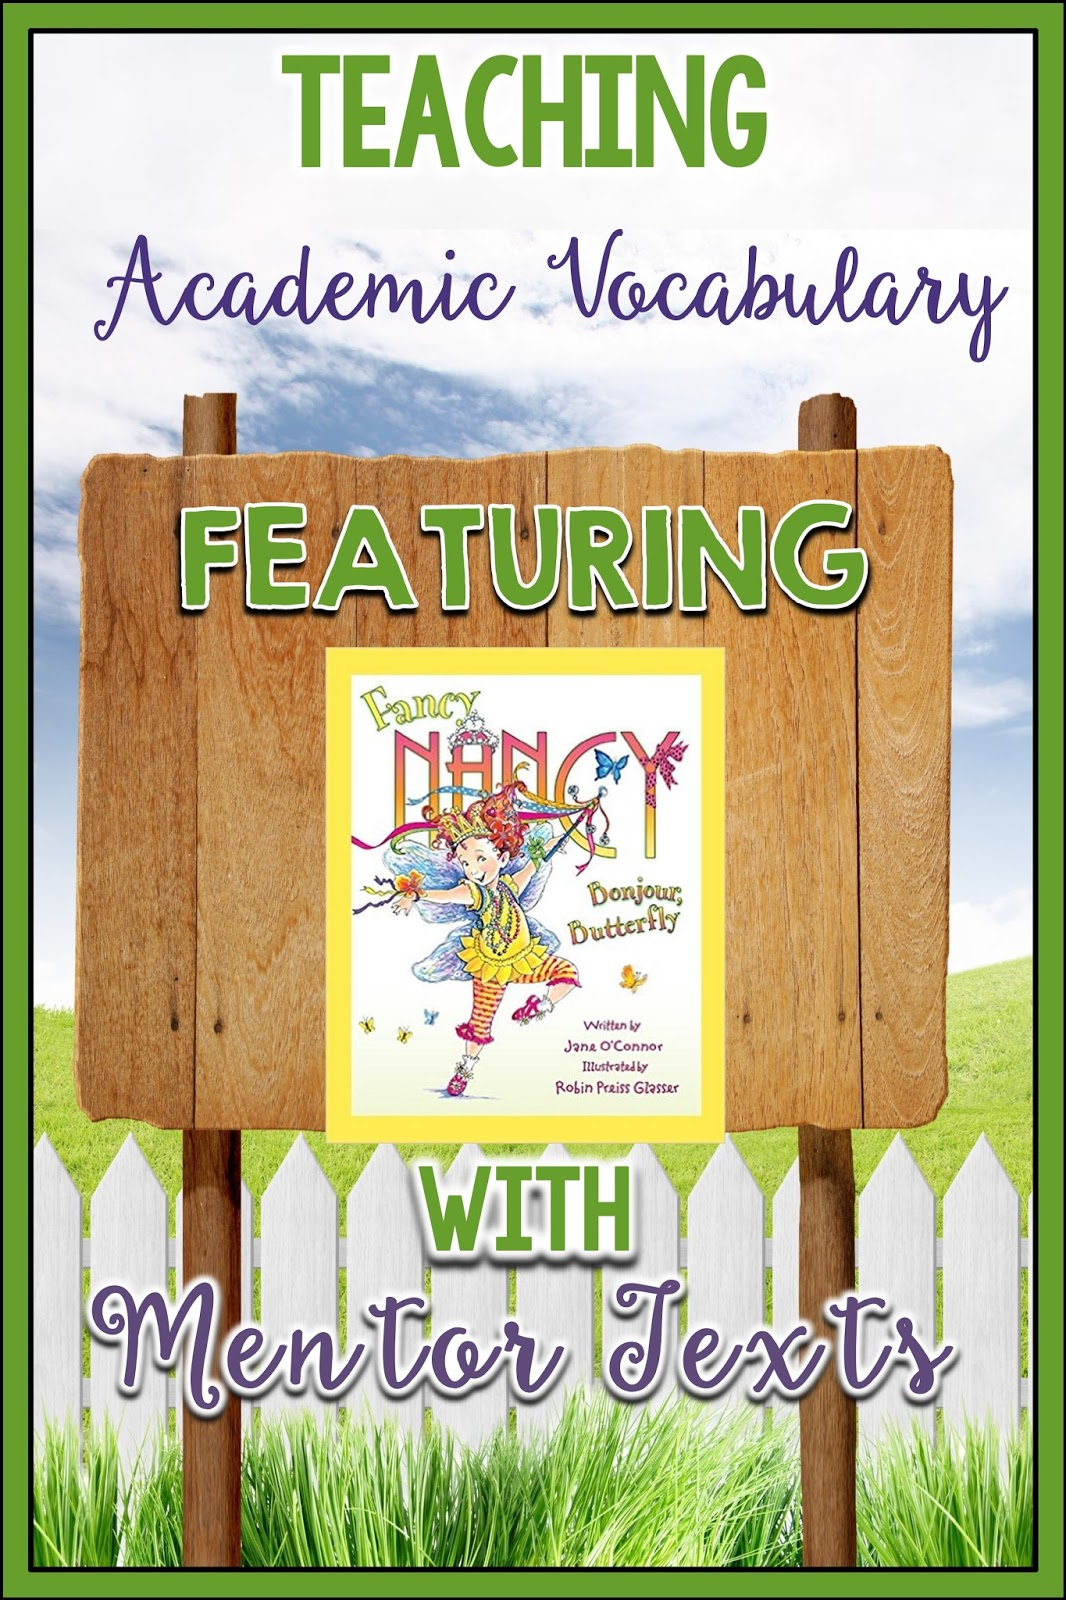 Fancy Nancy As A Mentor Text For Academic Vocabulary